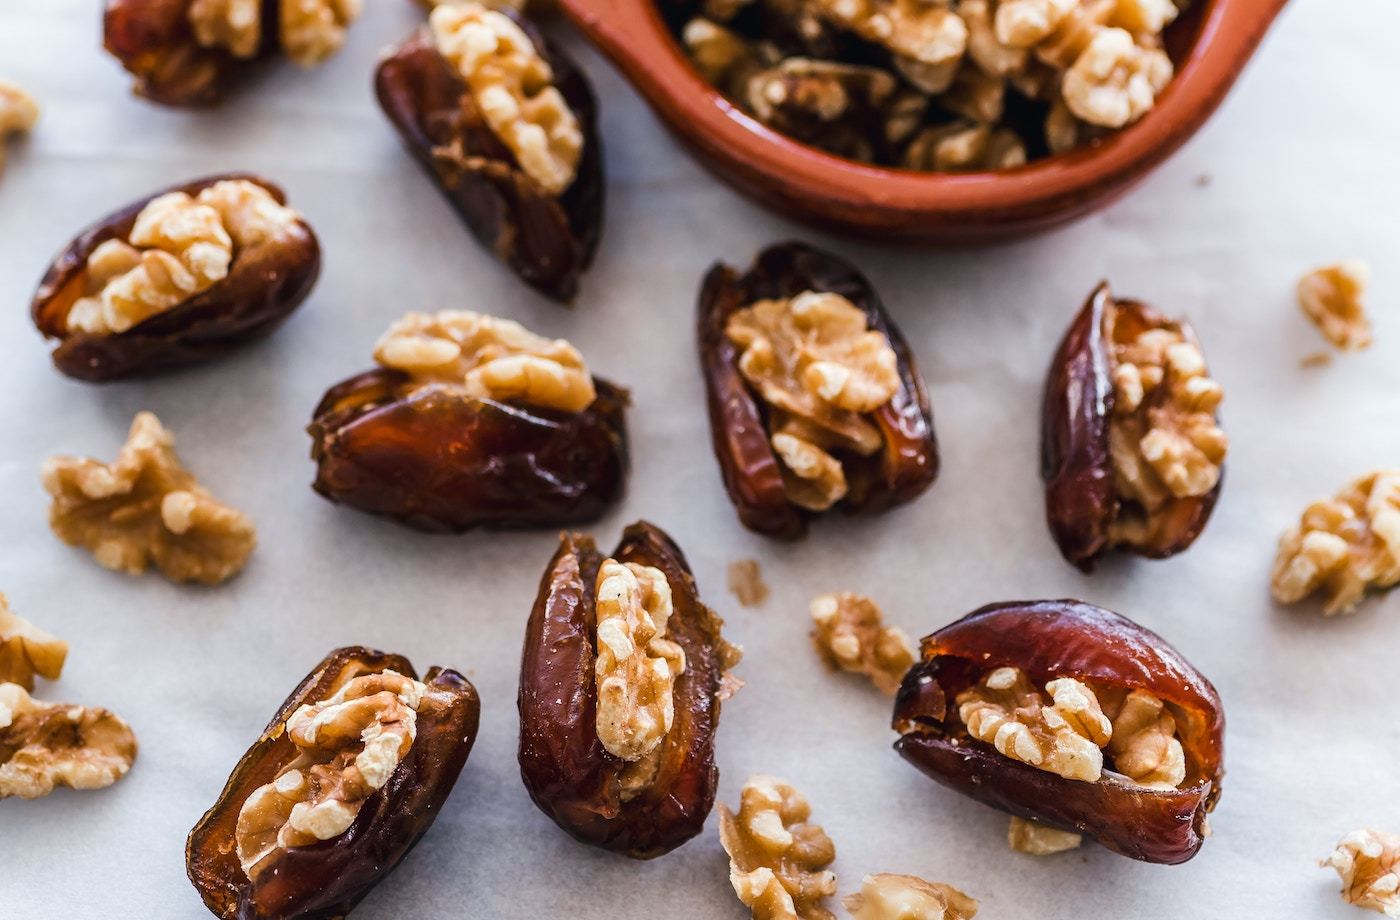 Thumbnail for Sick of bananas? You can get just as much potassium in two medjool dates